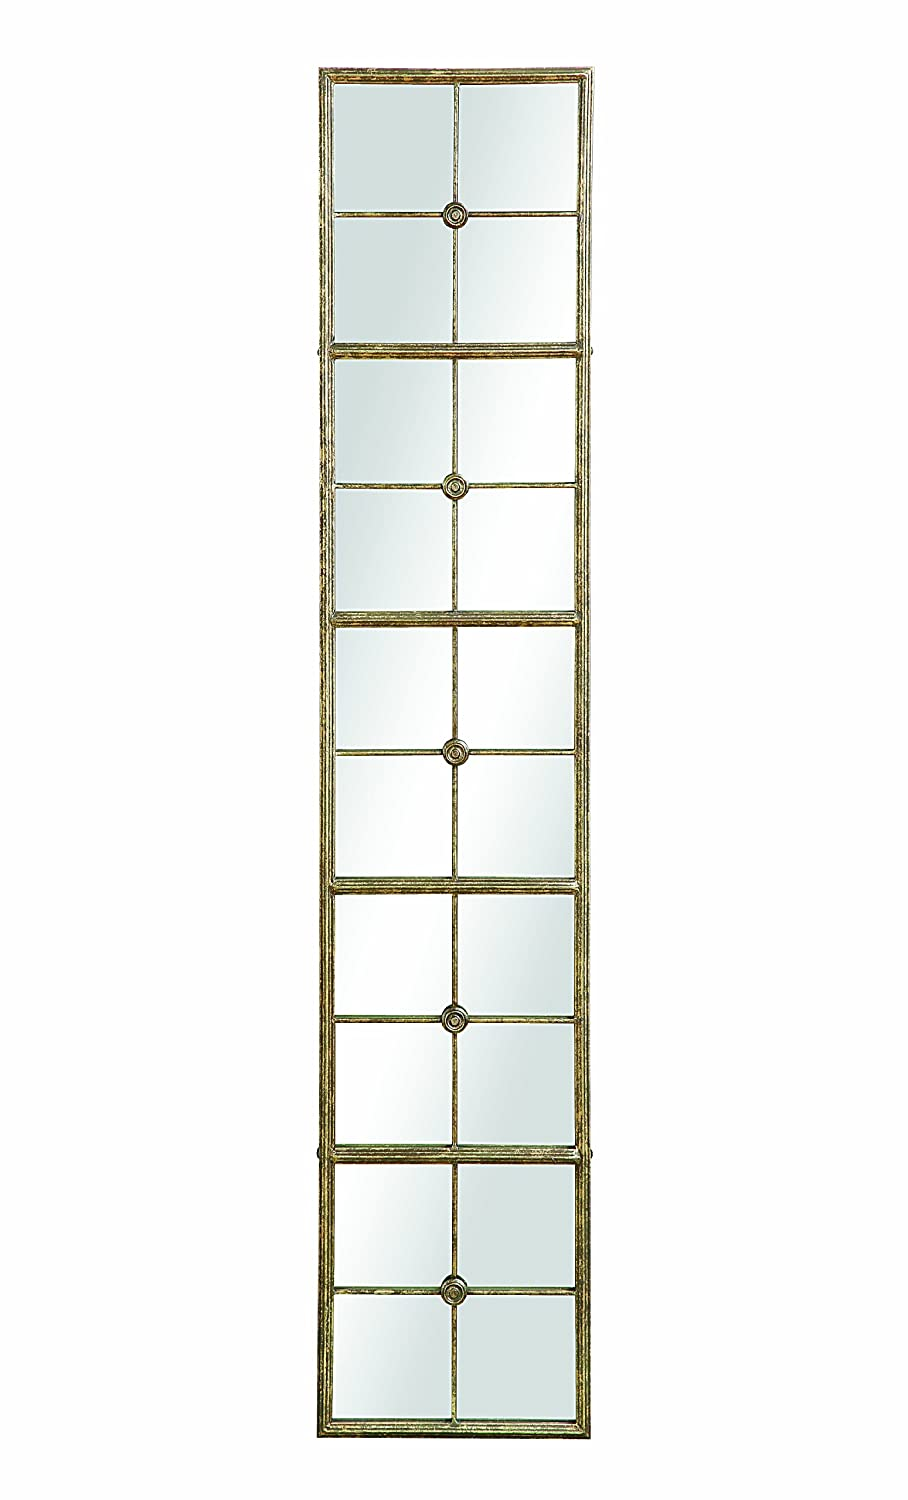 Creative Co-op DE7399 Divided Rectangle Mirror with Distressed Gold Frame